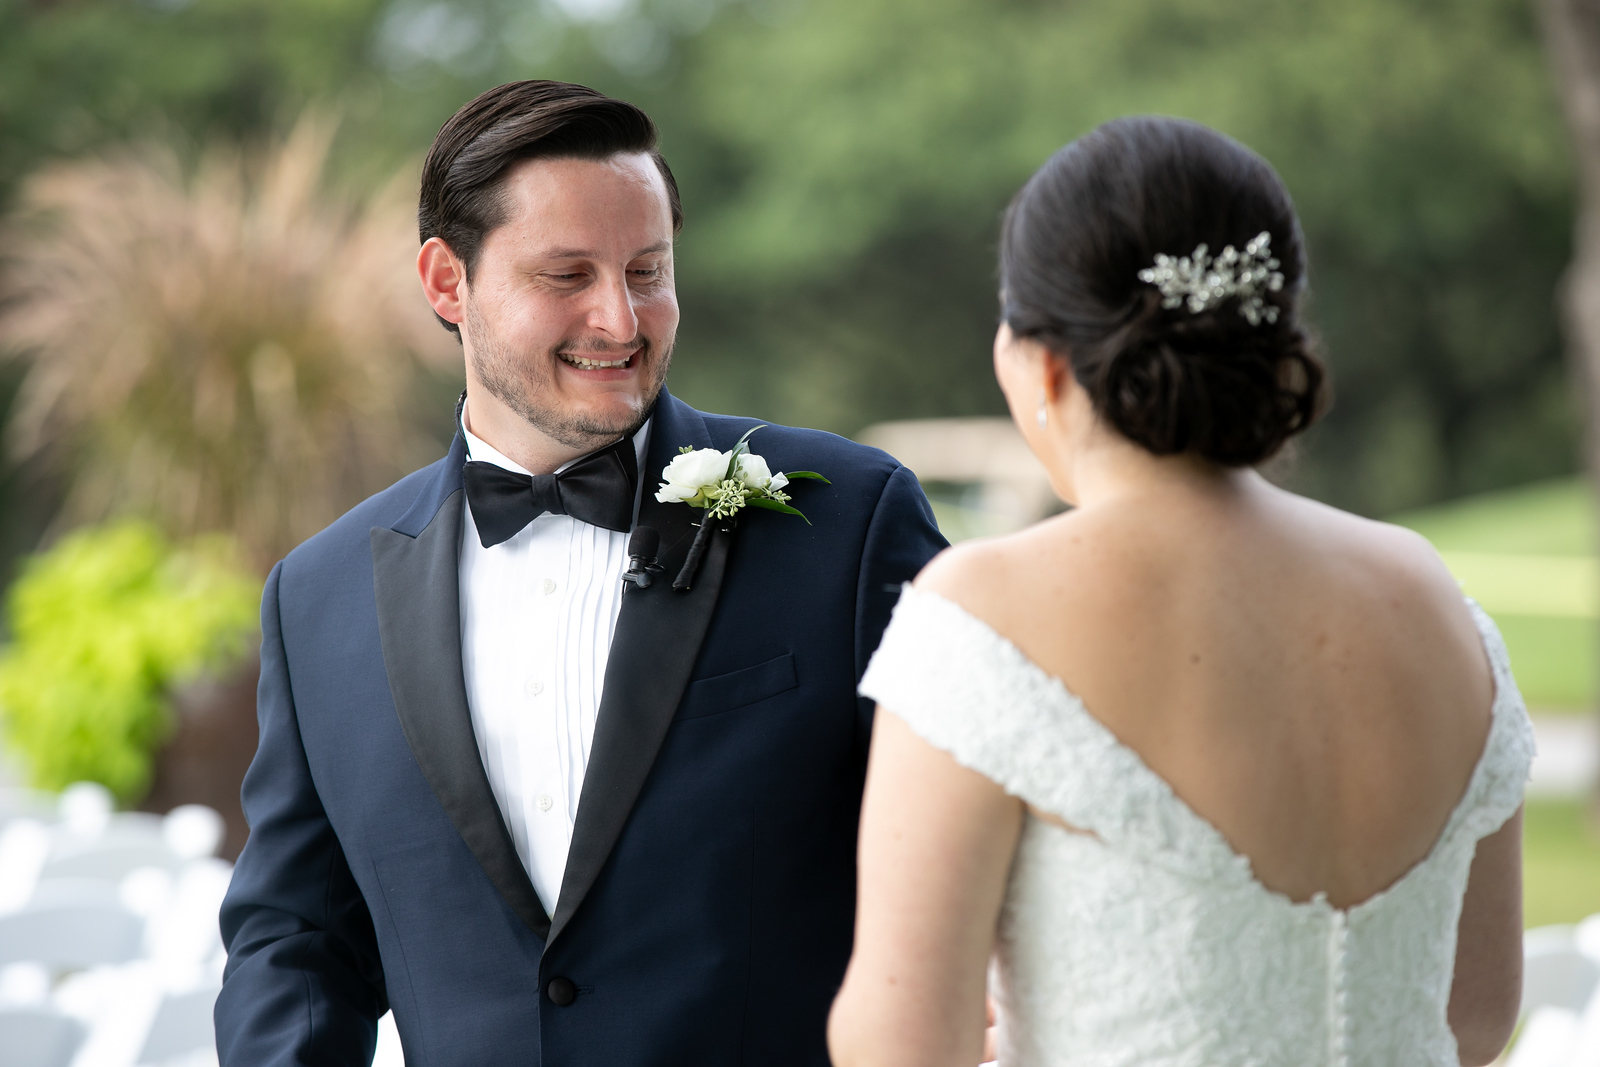 groom smiling as he sees his fiance for the first time at their first look